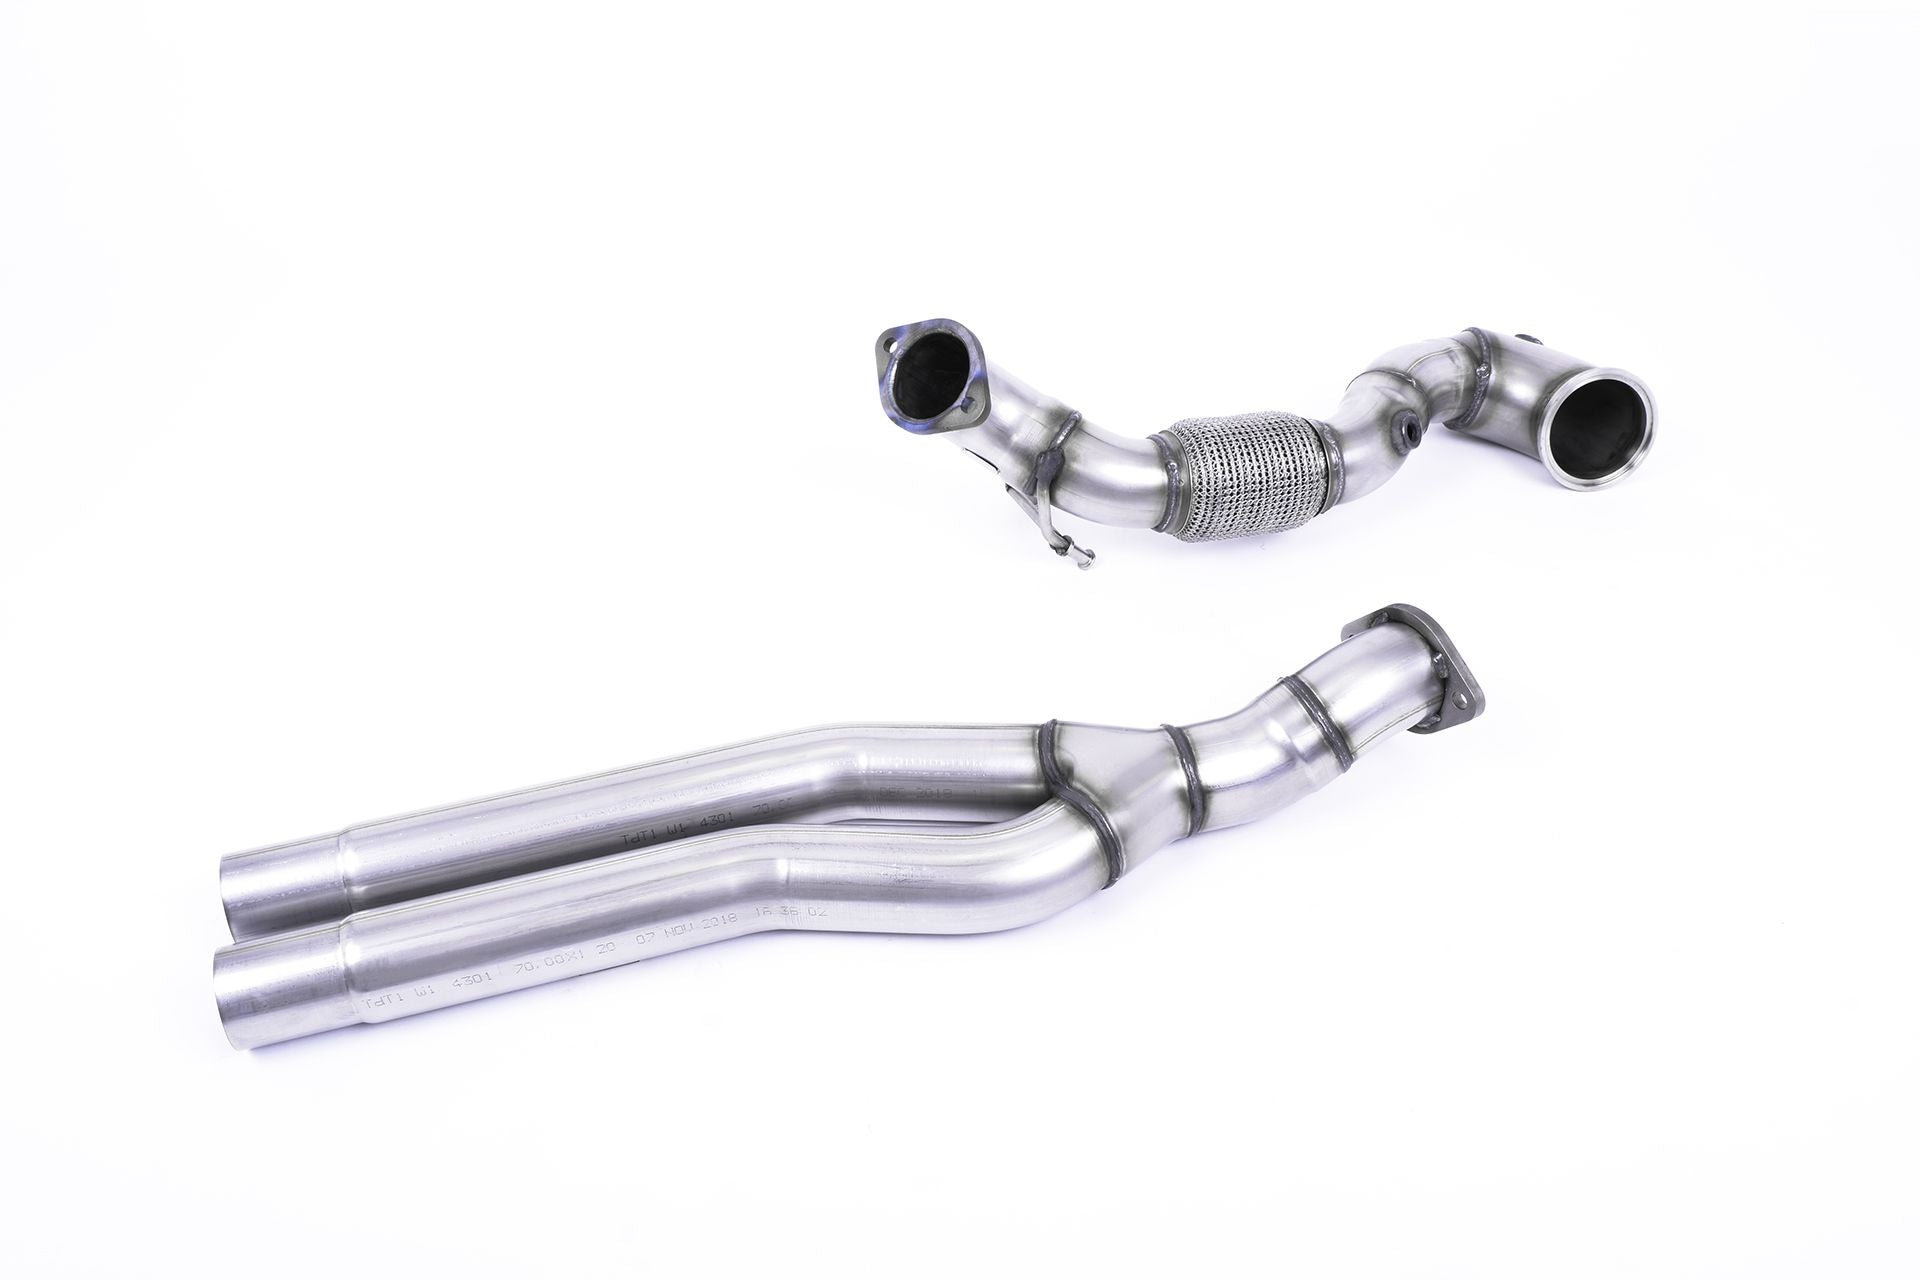 Milltek Sport Large-Bore Downpipes - AUDI RS3 2017- (FACELIFT) | OTR Motorsports - Performance parts, tuning and mechanical supplies